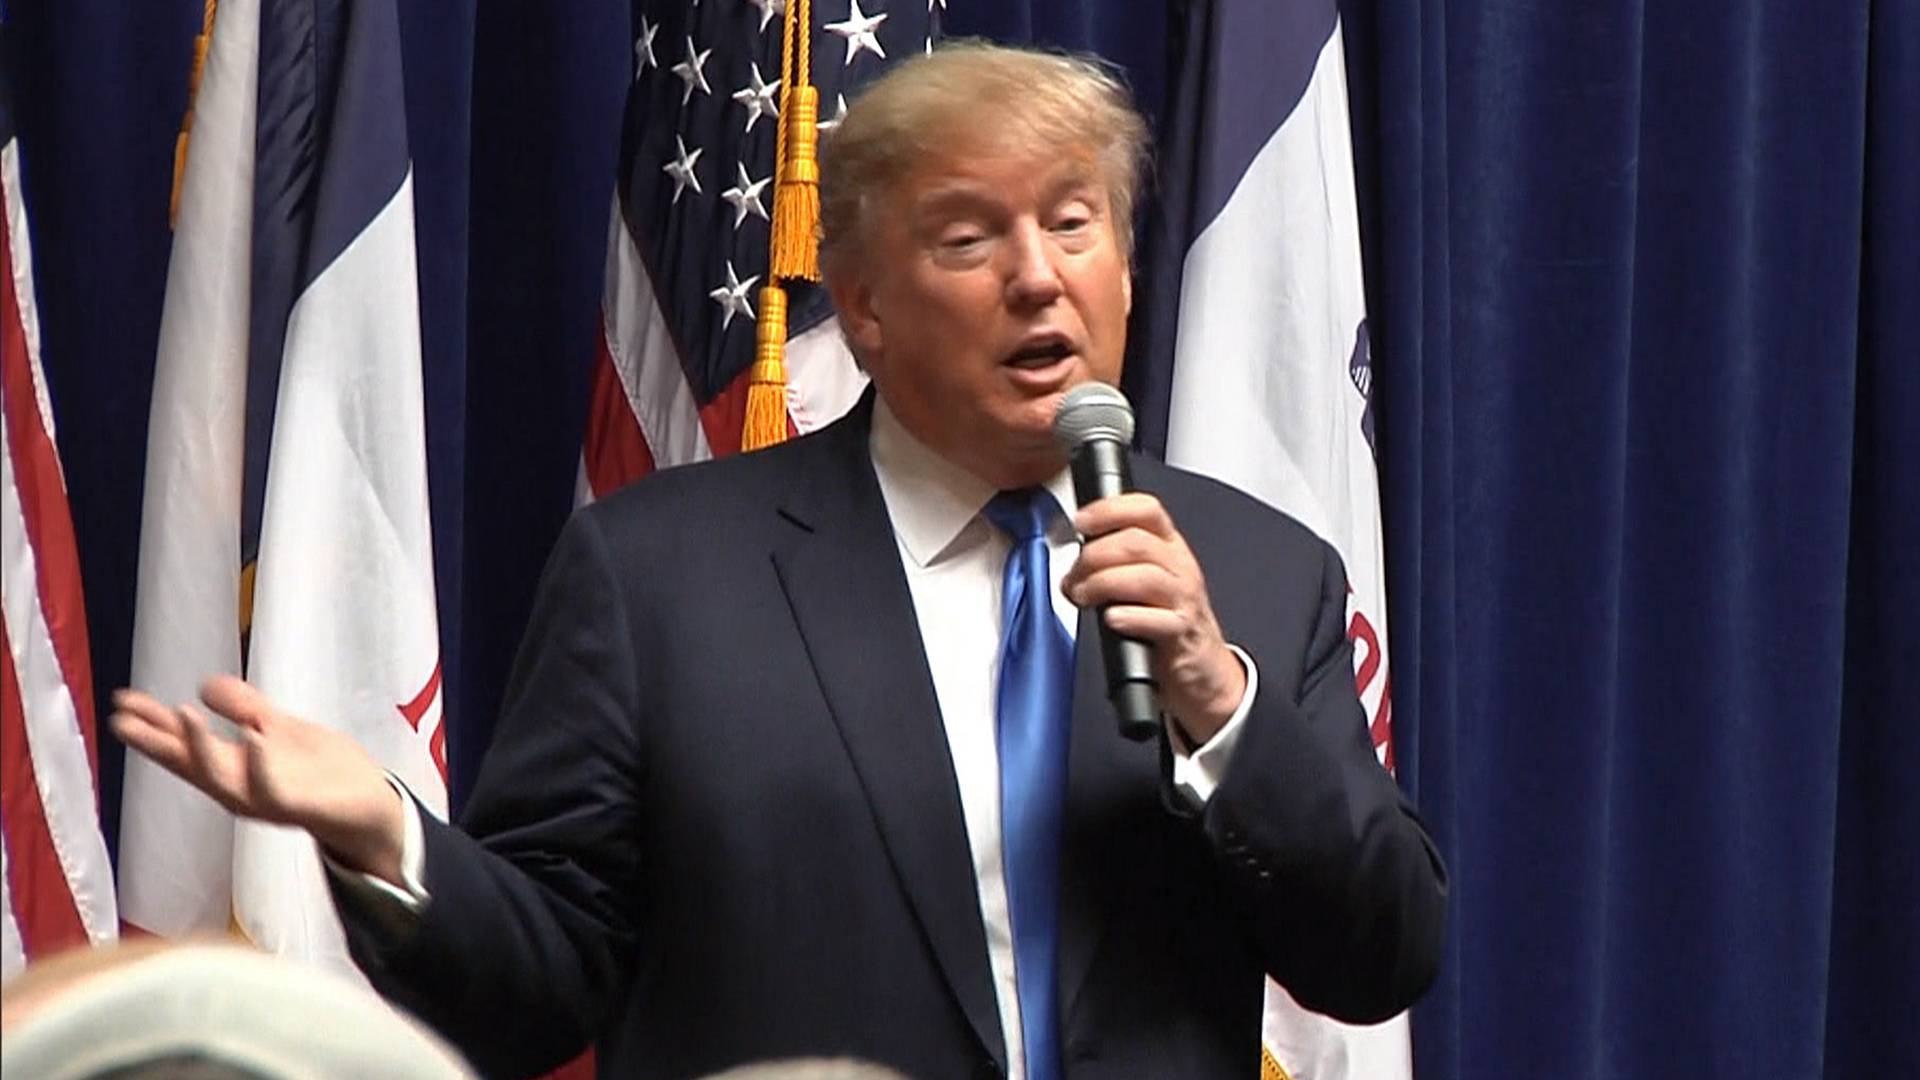 Donald Trump Booed by Conservative Crowd After Attacks on Ted Cruz